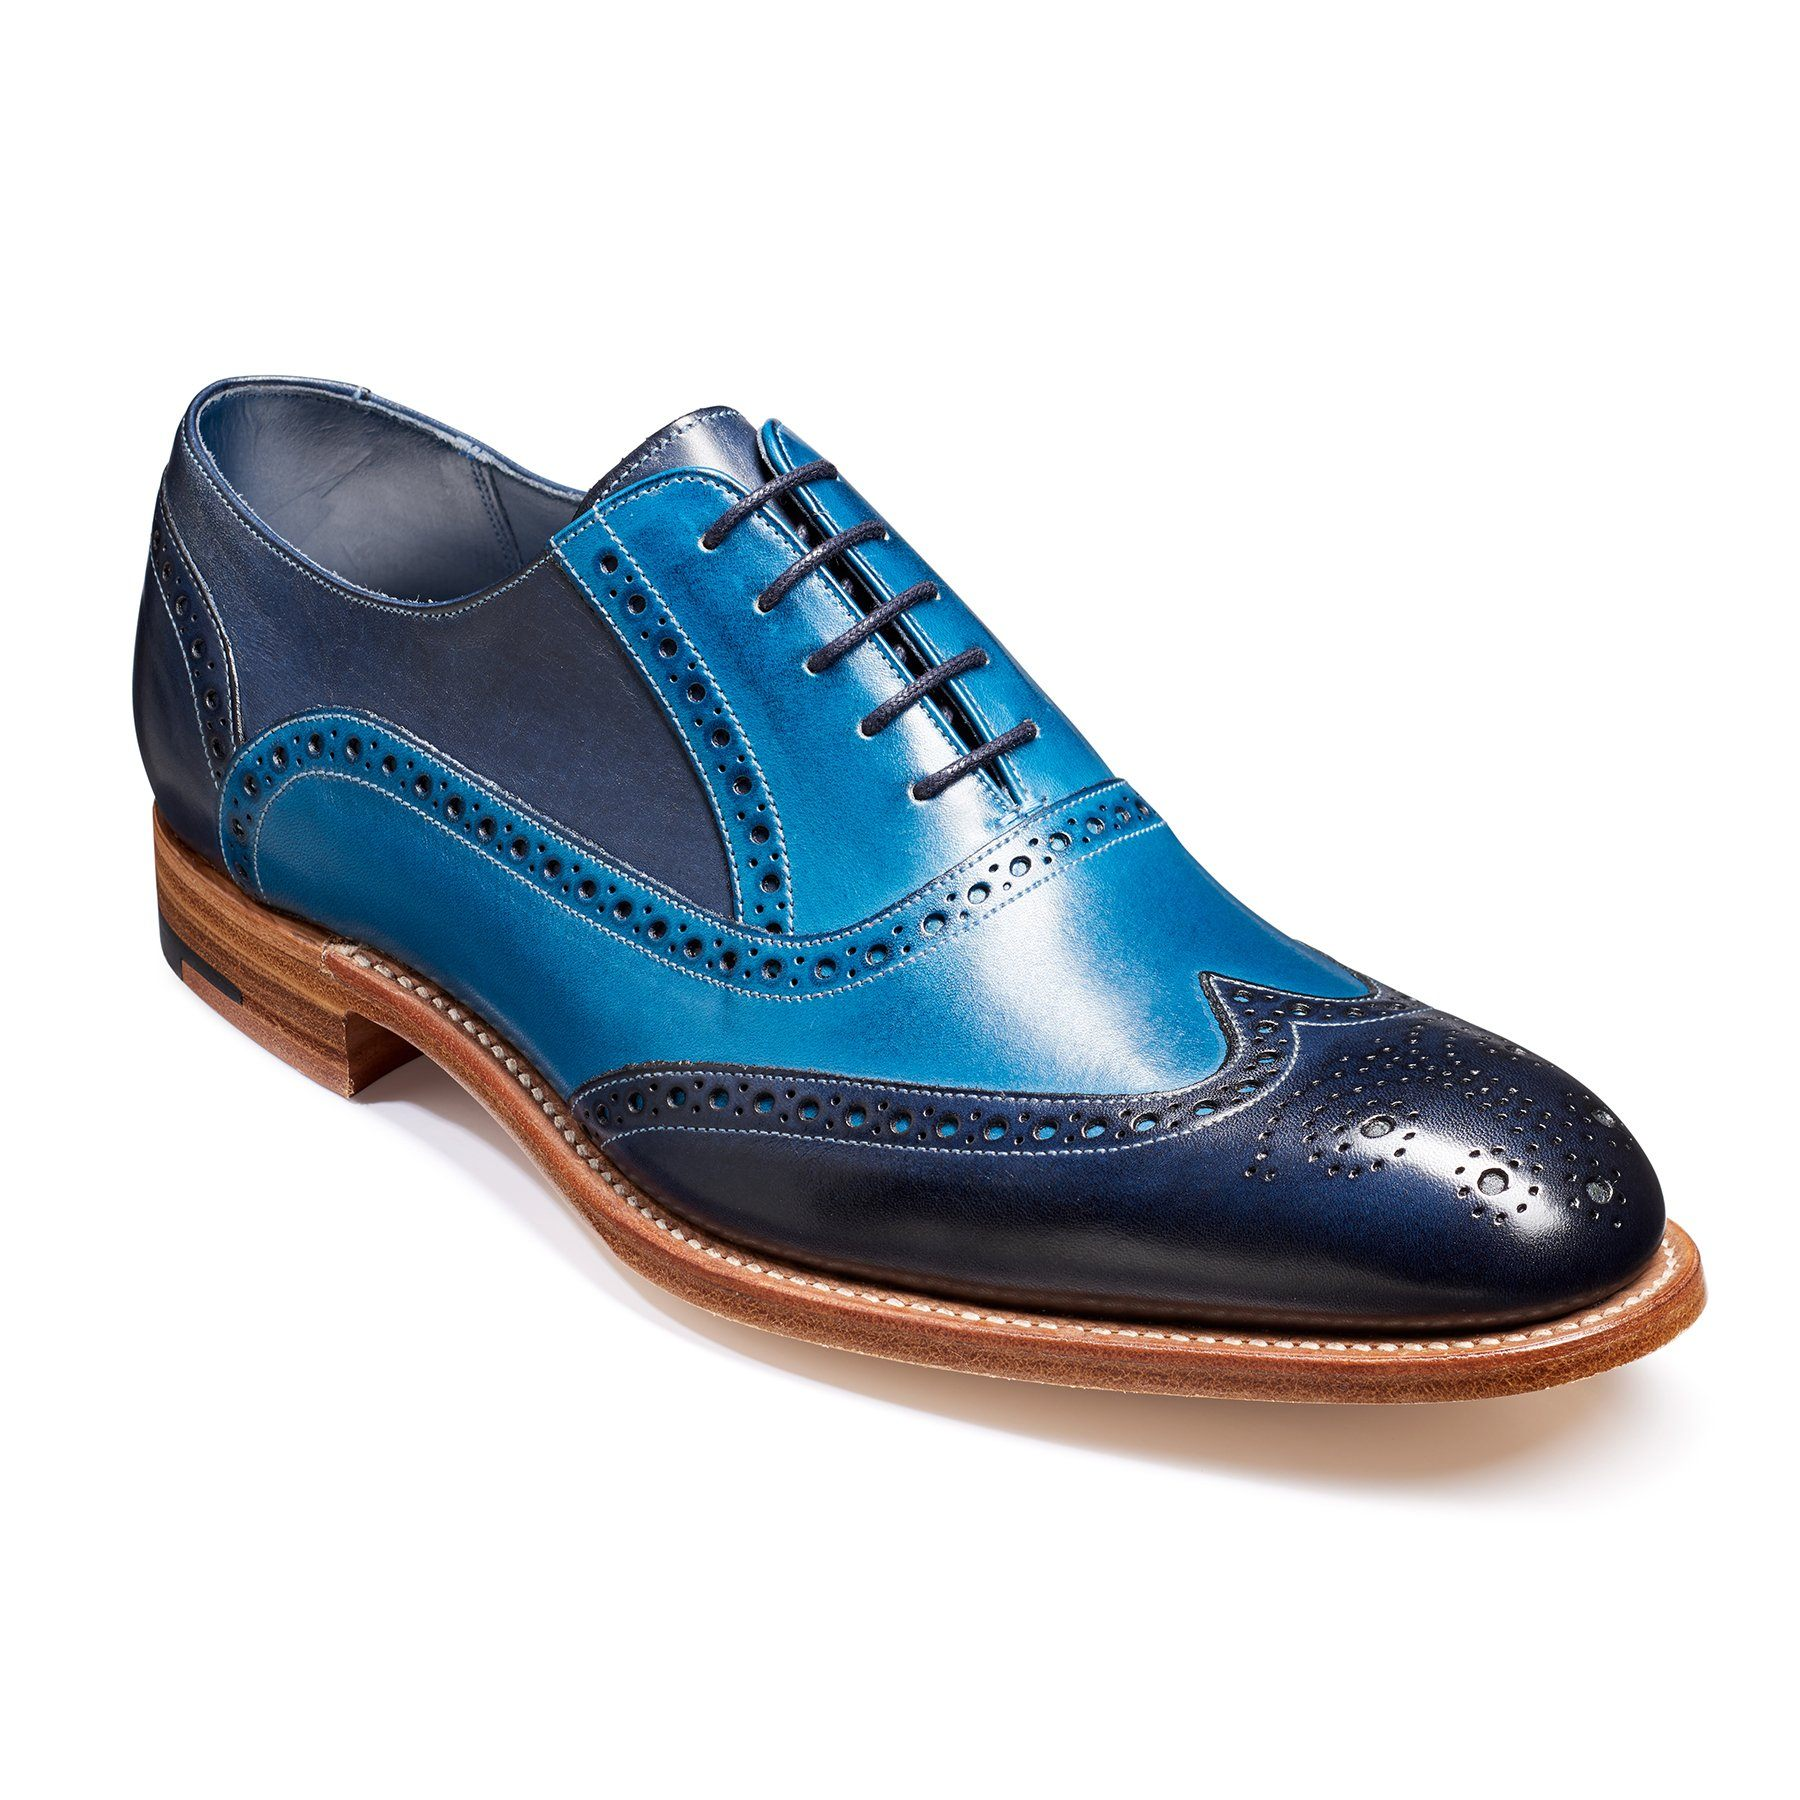 Valiant NavyBlue Painted Brogues